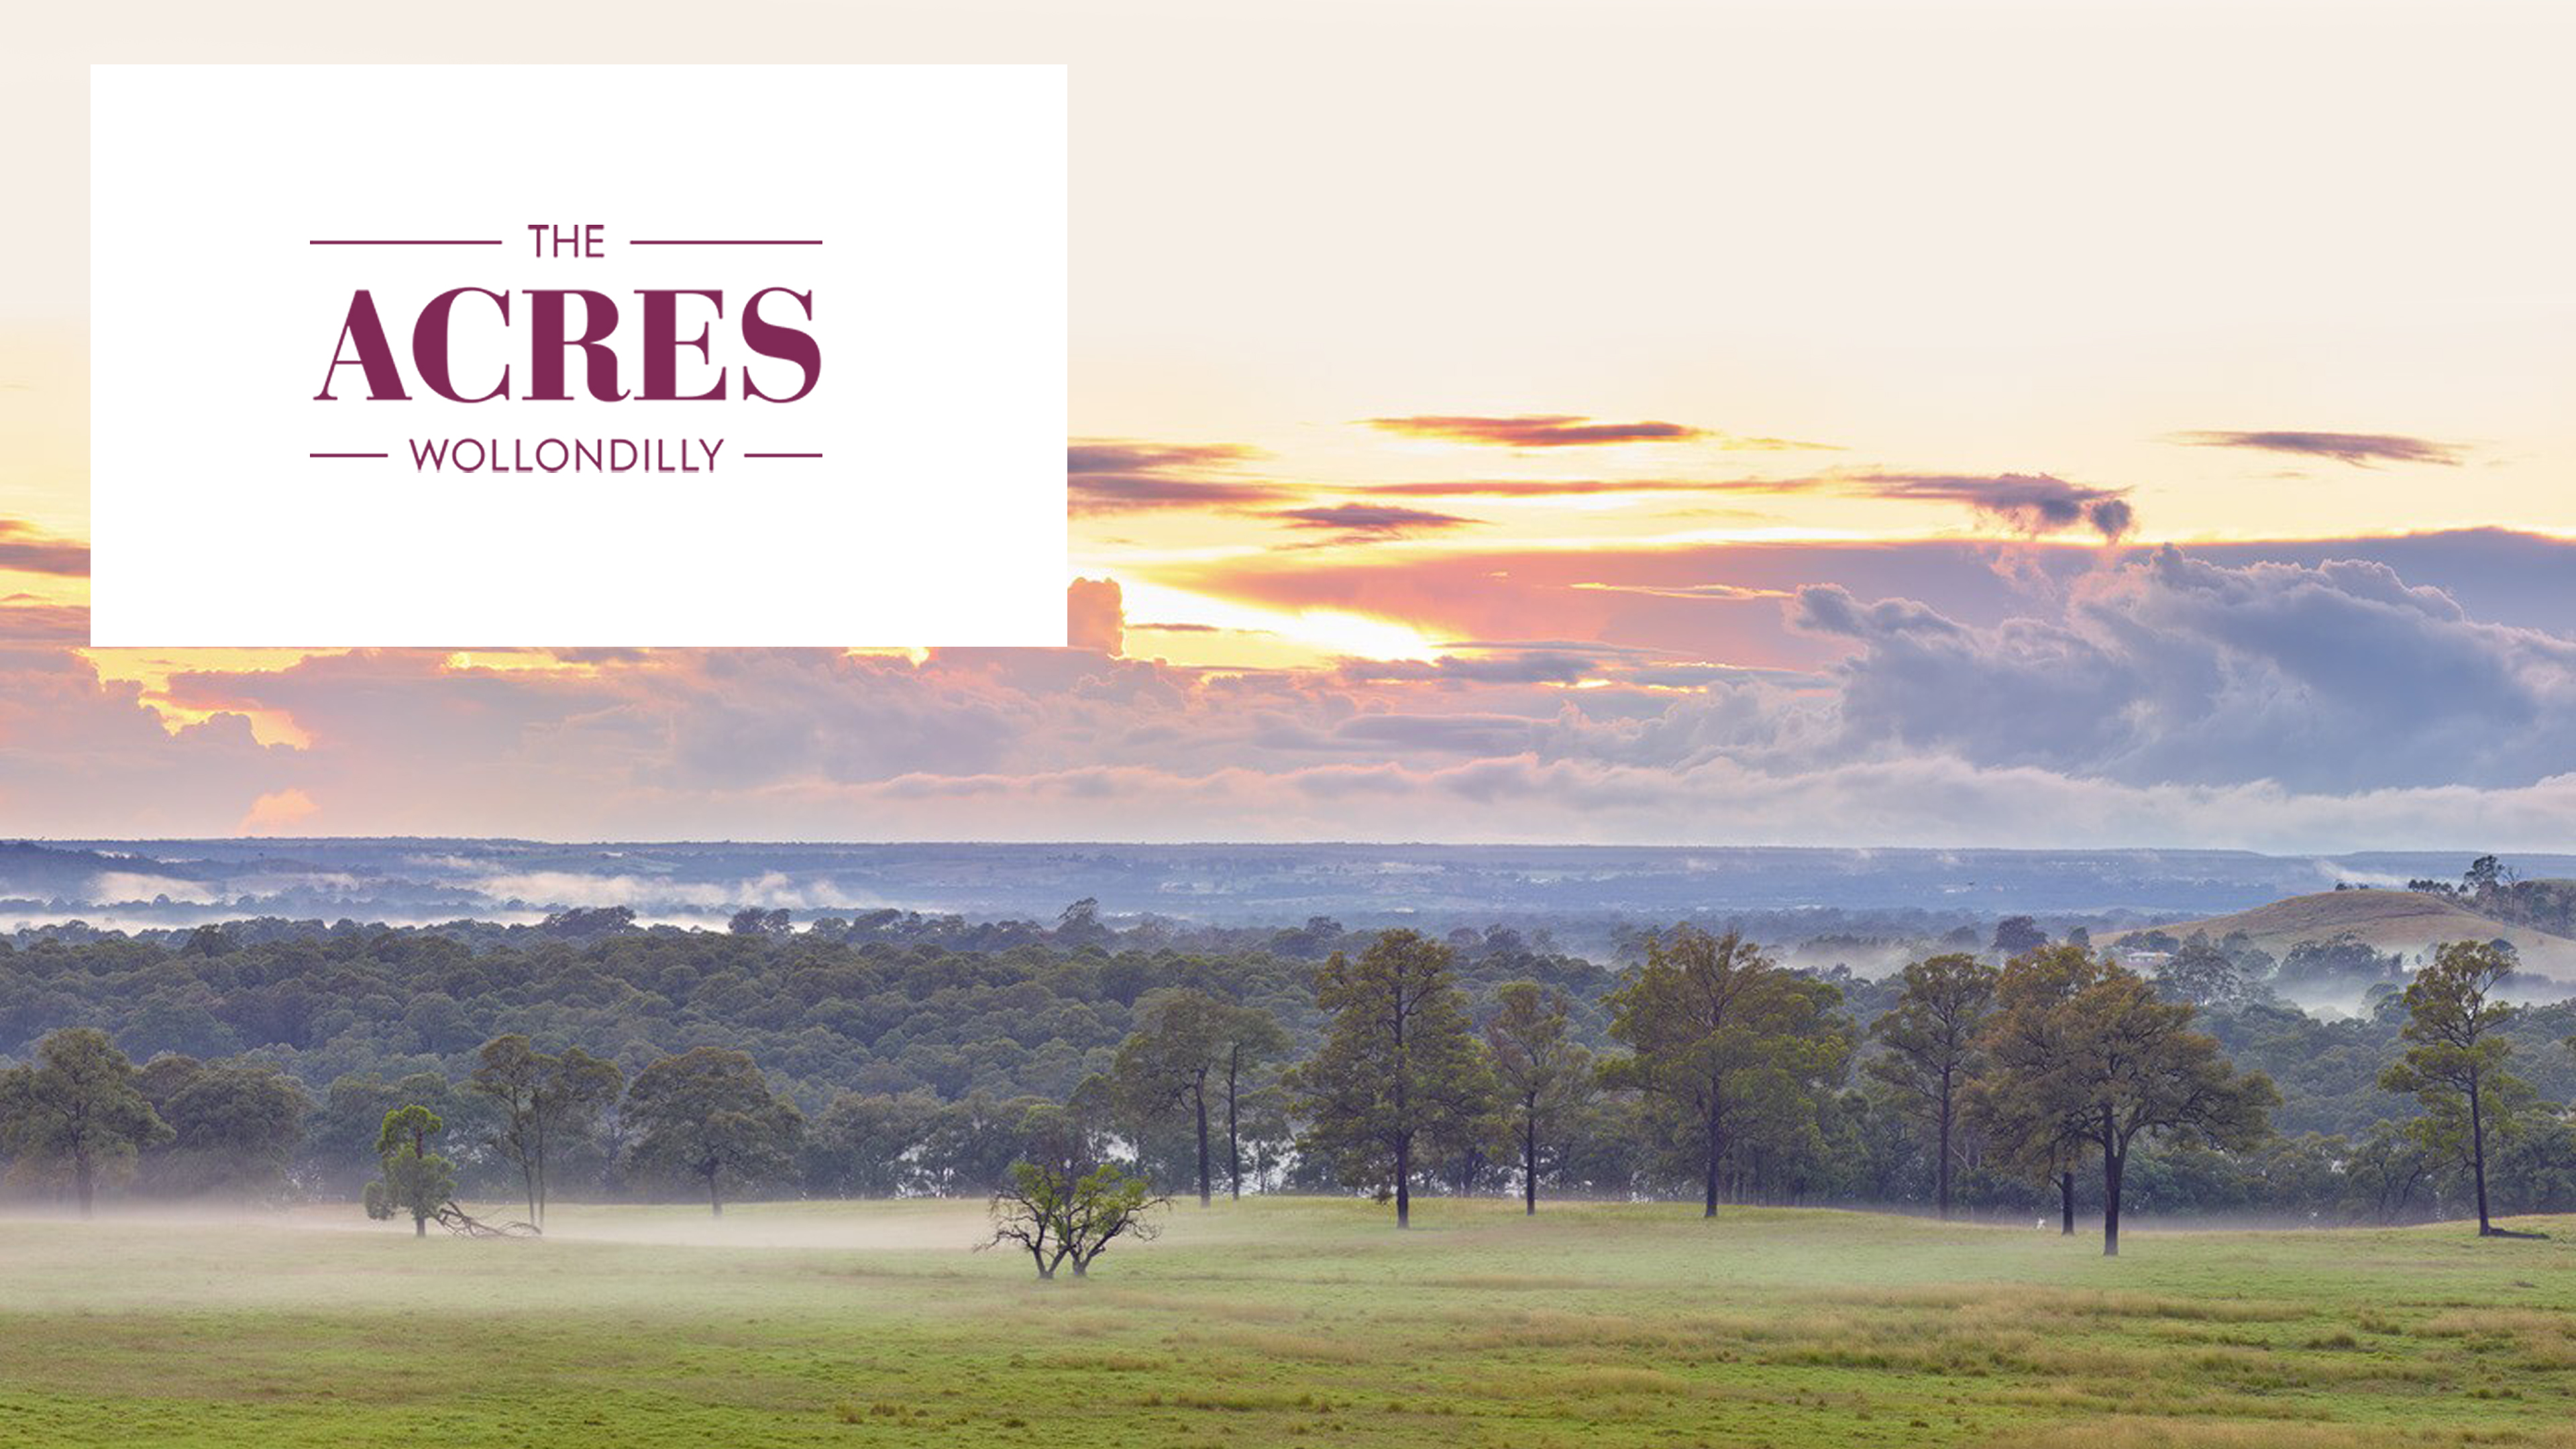 The Acres, Wollondilly